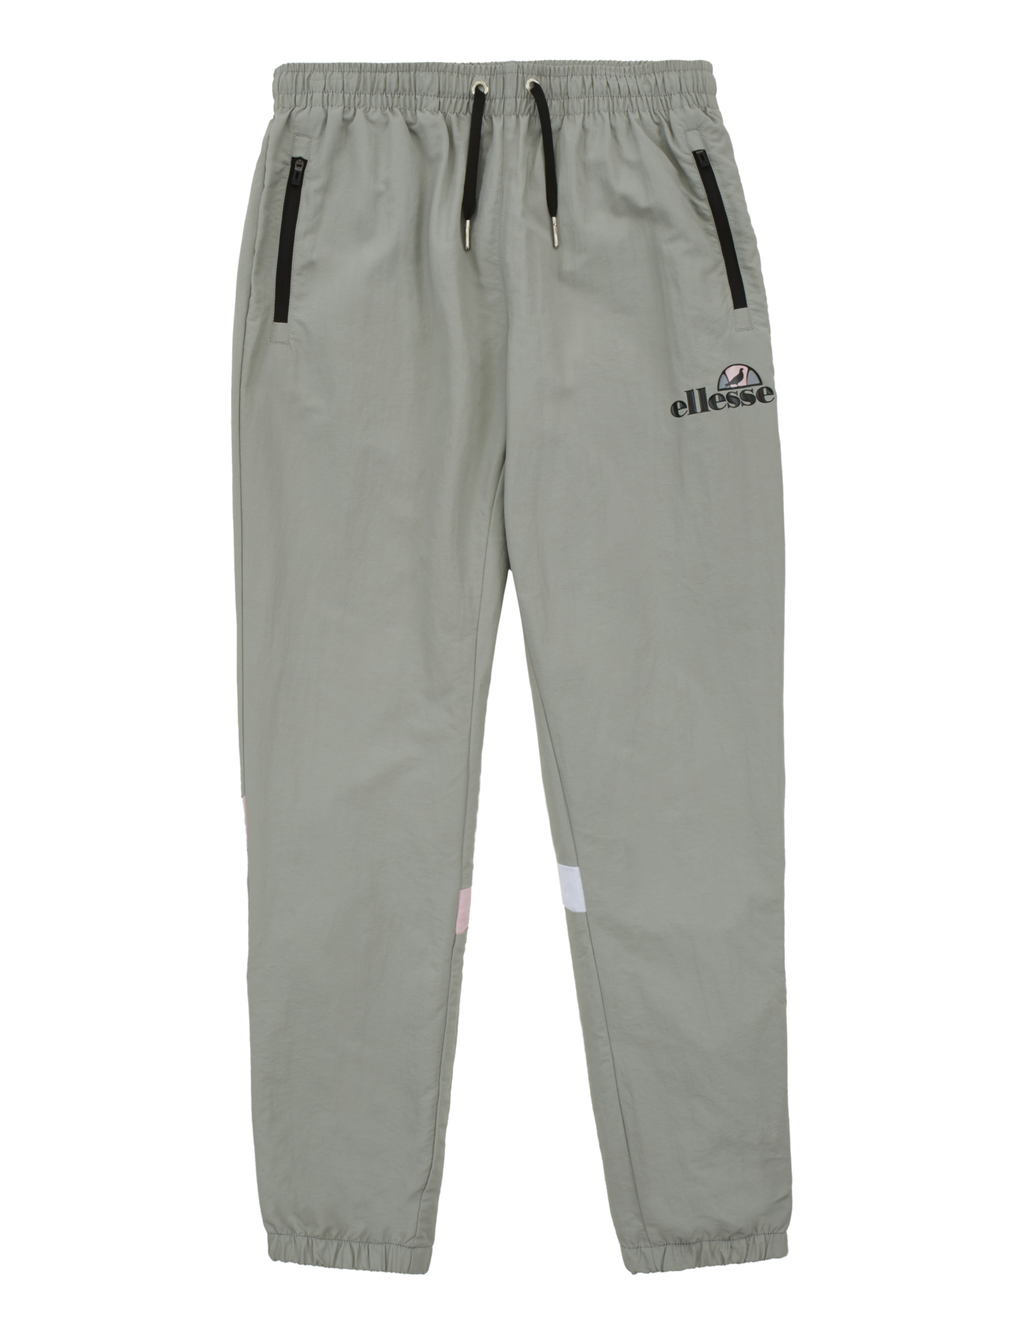 Staple x ellesse Columbus Pants - Sweatpants | Staple Pigeon